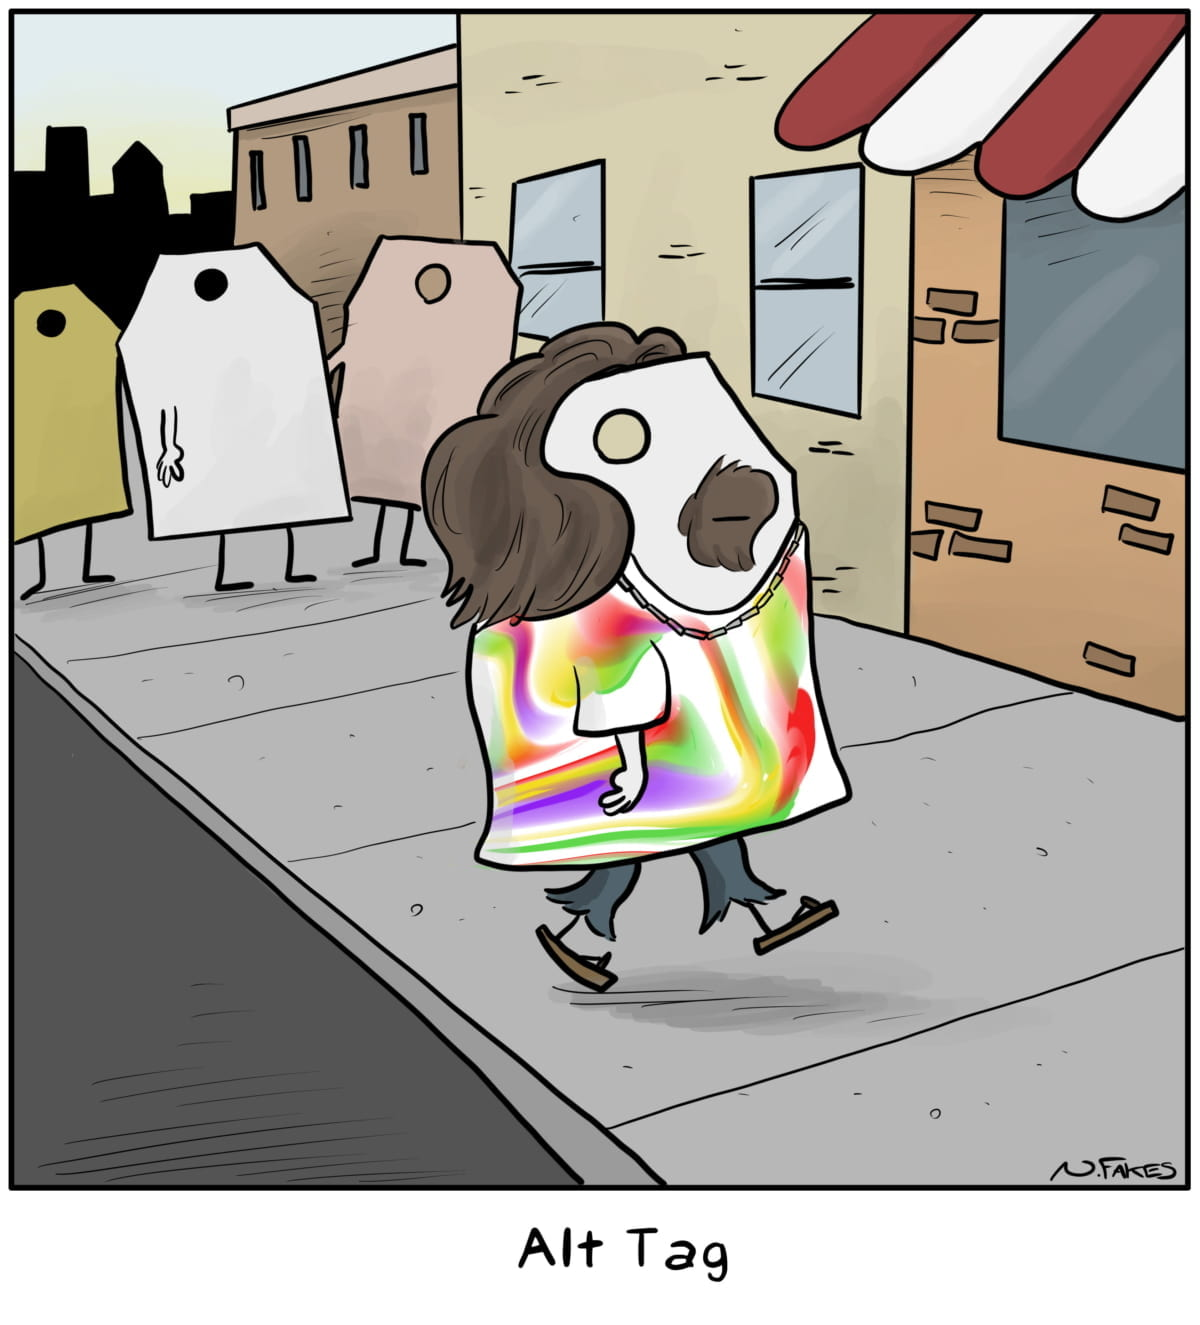 Funny image of an alt tag